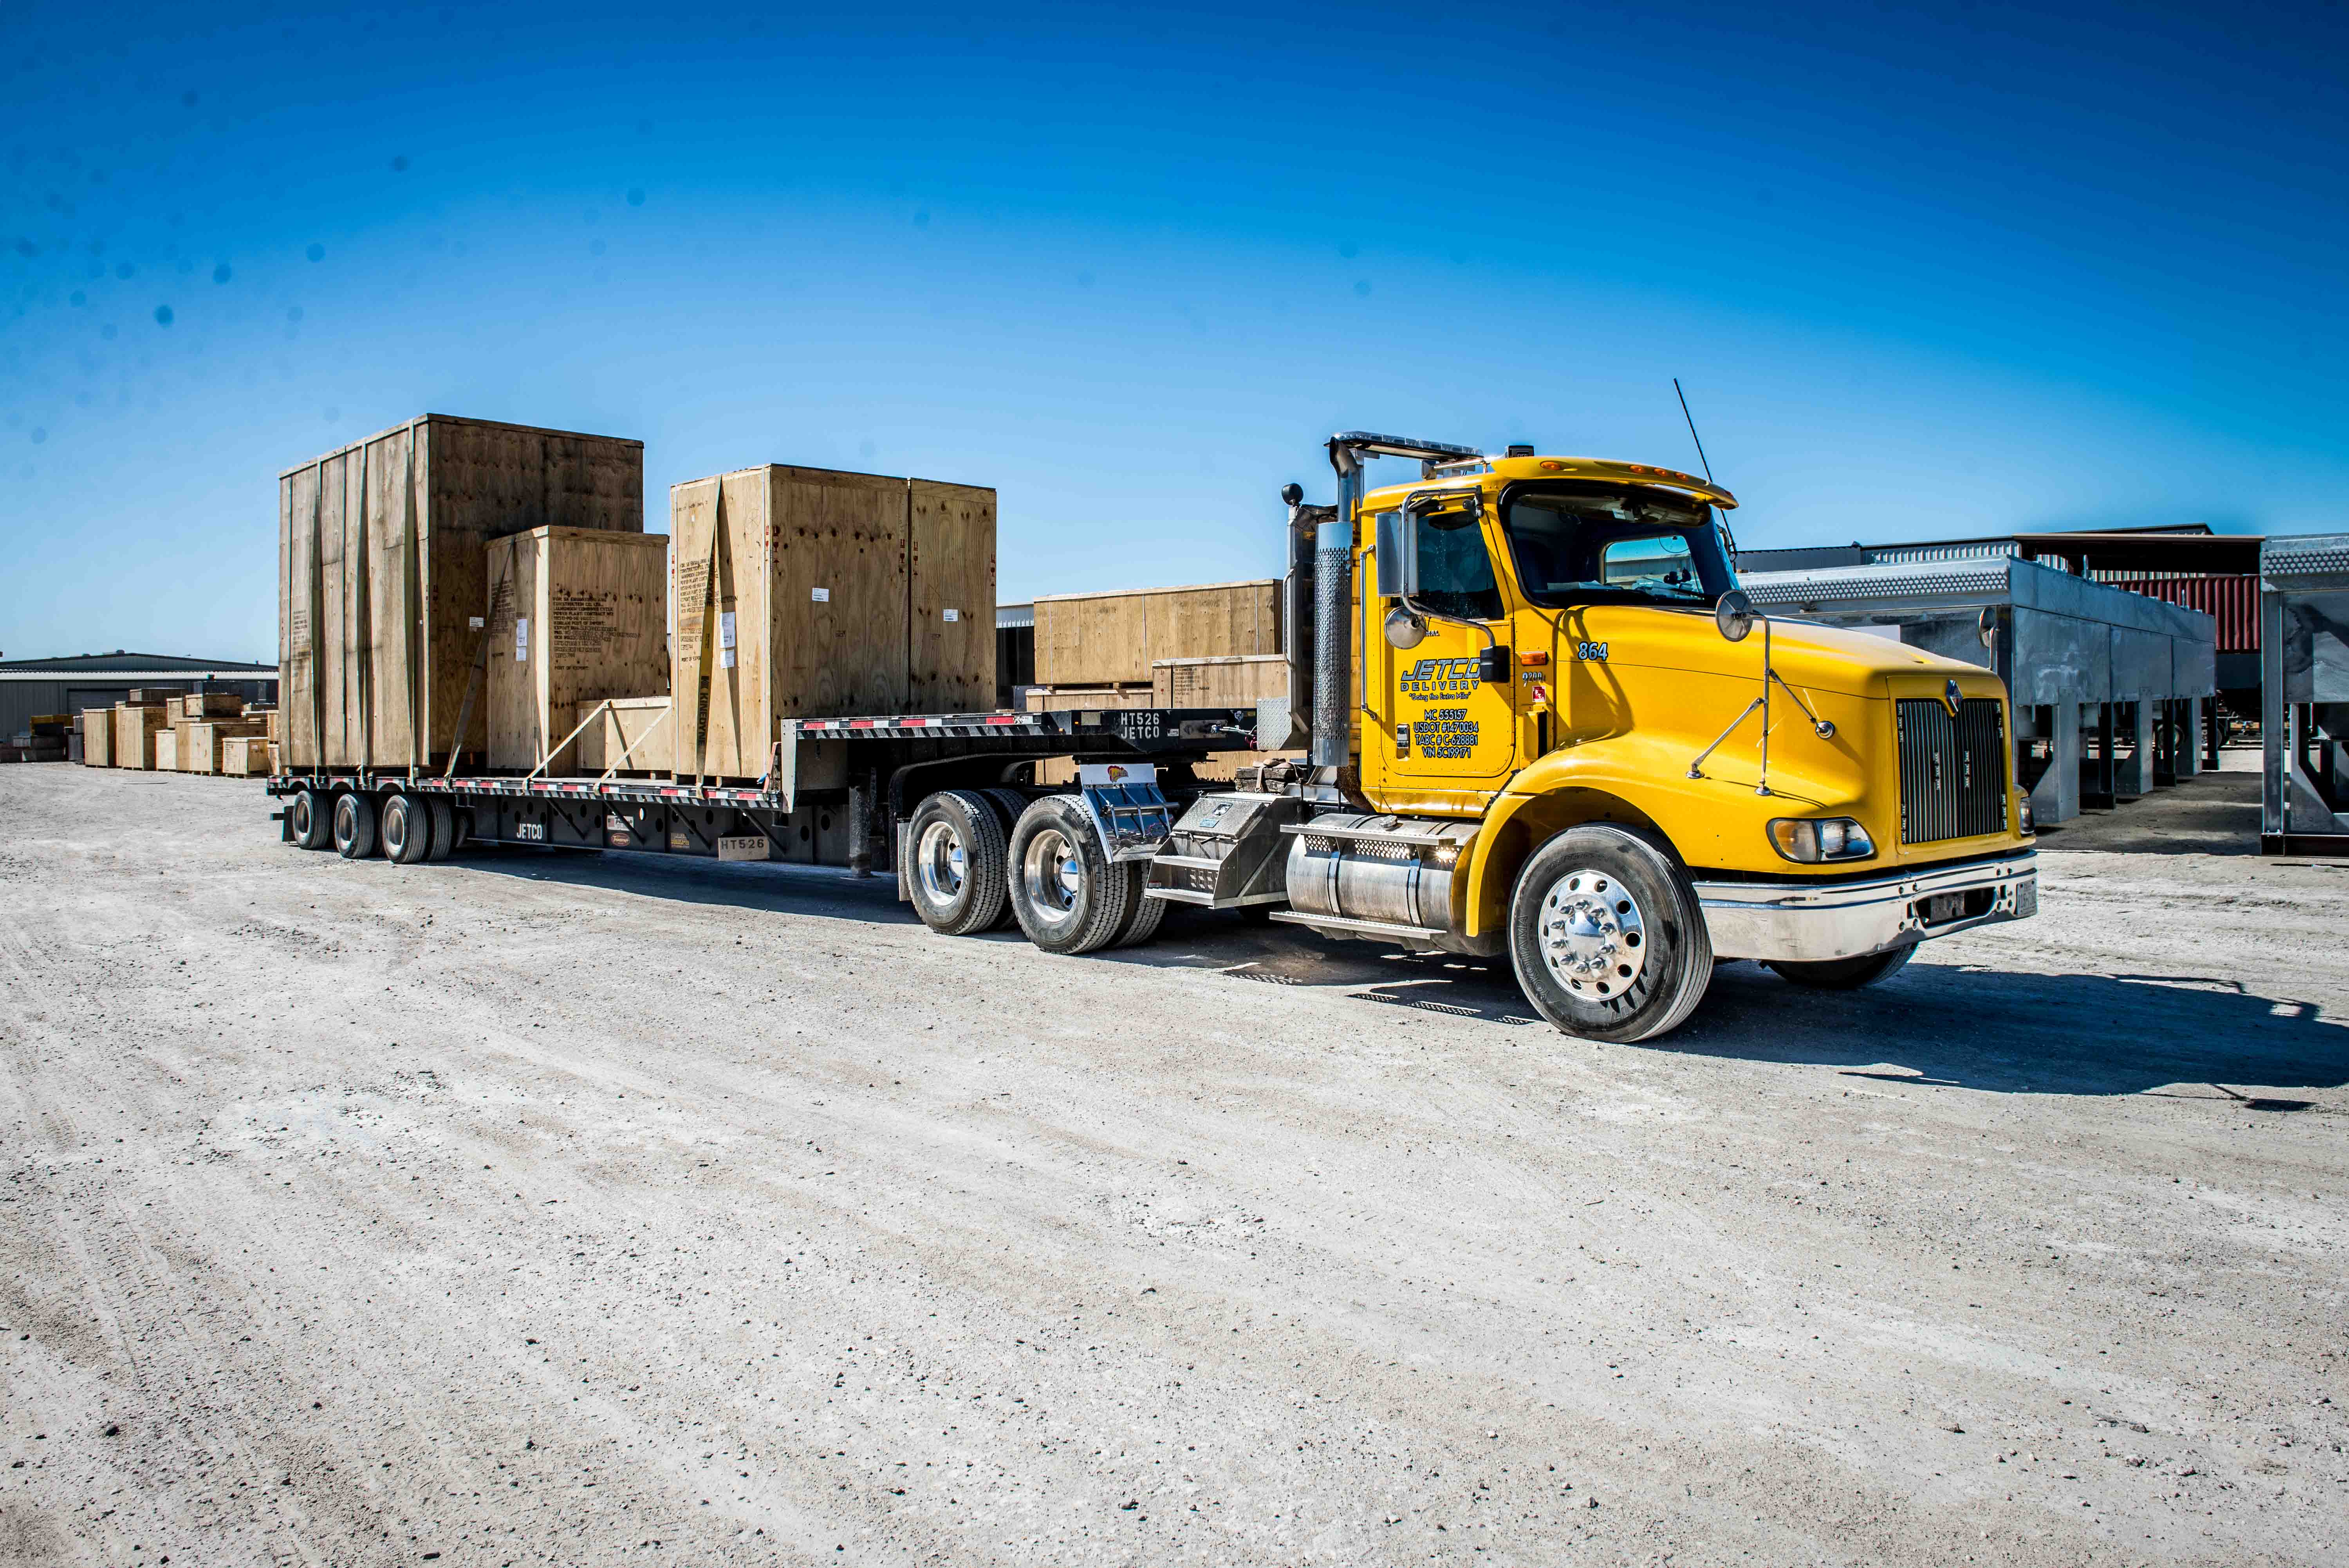 Hazmat Trucking Companies Learn to Optimize Your Freight Spend with Our Free Webinar │ July 14 ...